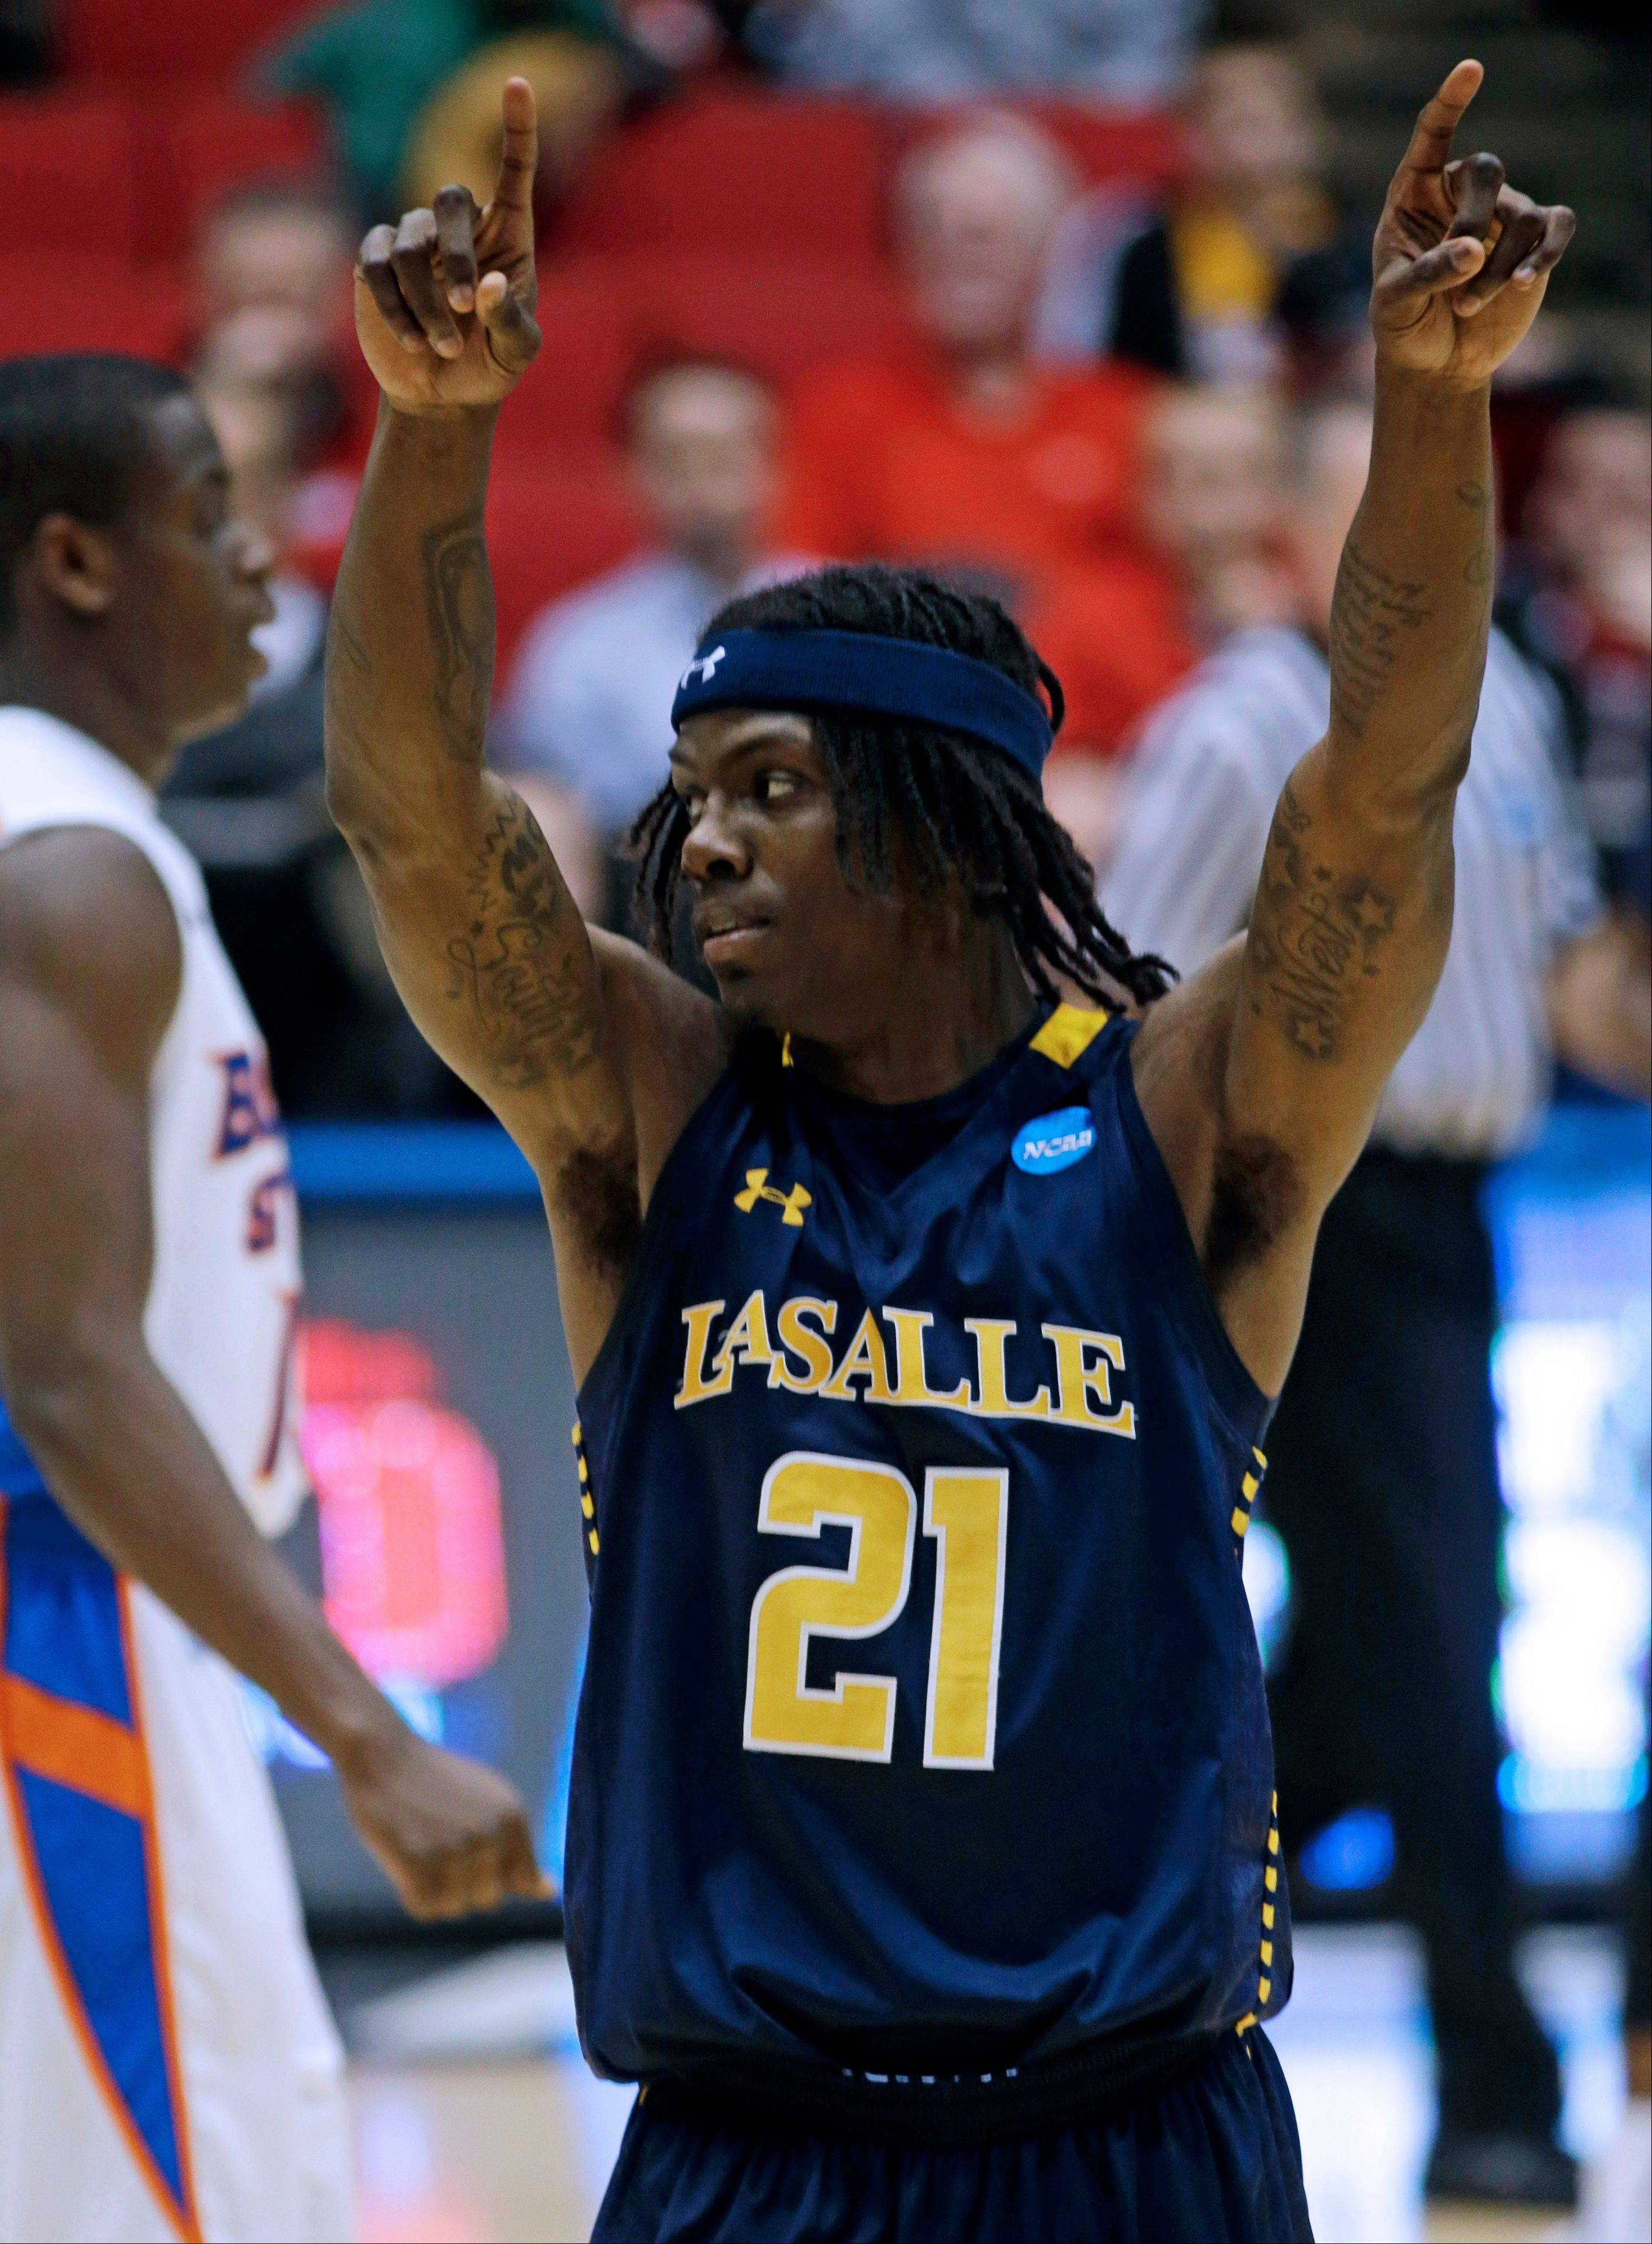 La Salle guard Tyrone Garland (21) celebrates after defeating Boise State 80-71 in a first-round game of the NCAA college basketball tournament, Wednesday, March 20, 2013, in Dayton, Ohio. Garland led La Salle with 22 points.